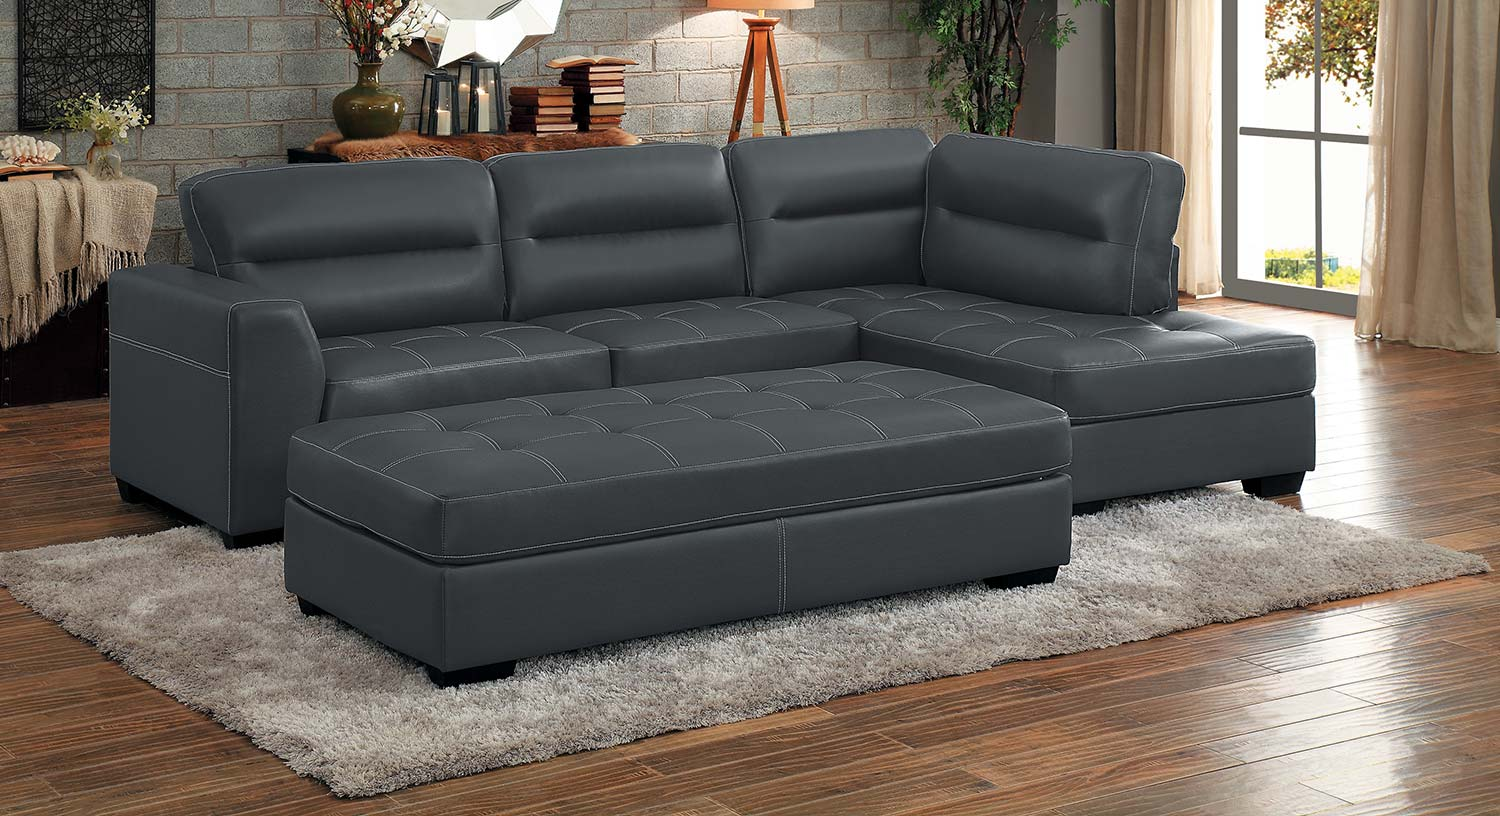 Homelegance Terza Sectional Sofa Set - Gray